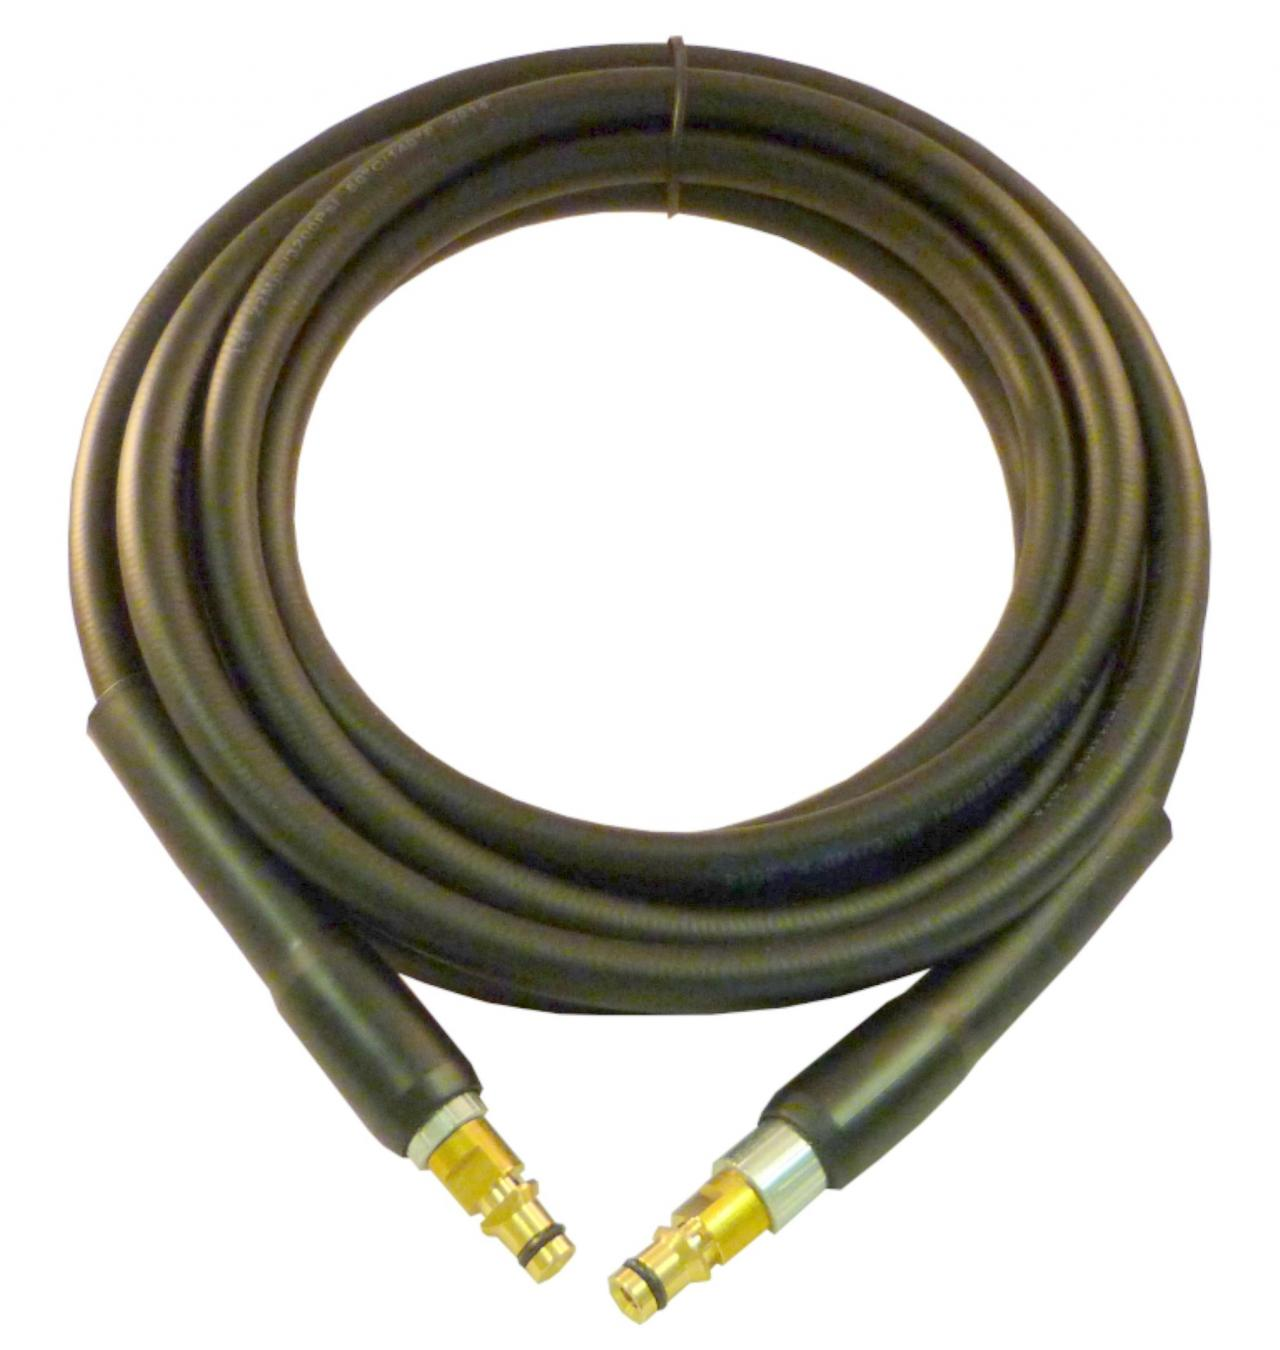 new 5m hose fits karcher k2 full control with yellow c clip trigger ns ns tr ebay. Black Bedroom Furniture Sets. Home Design Ideas